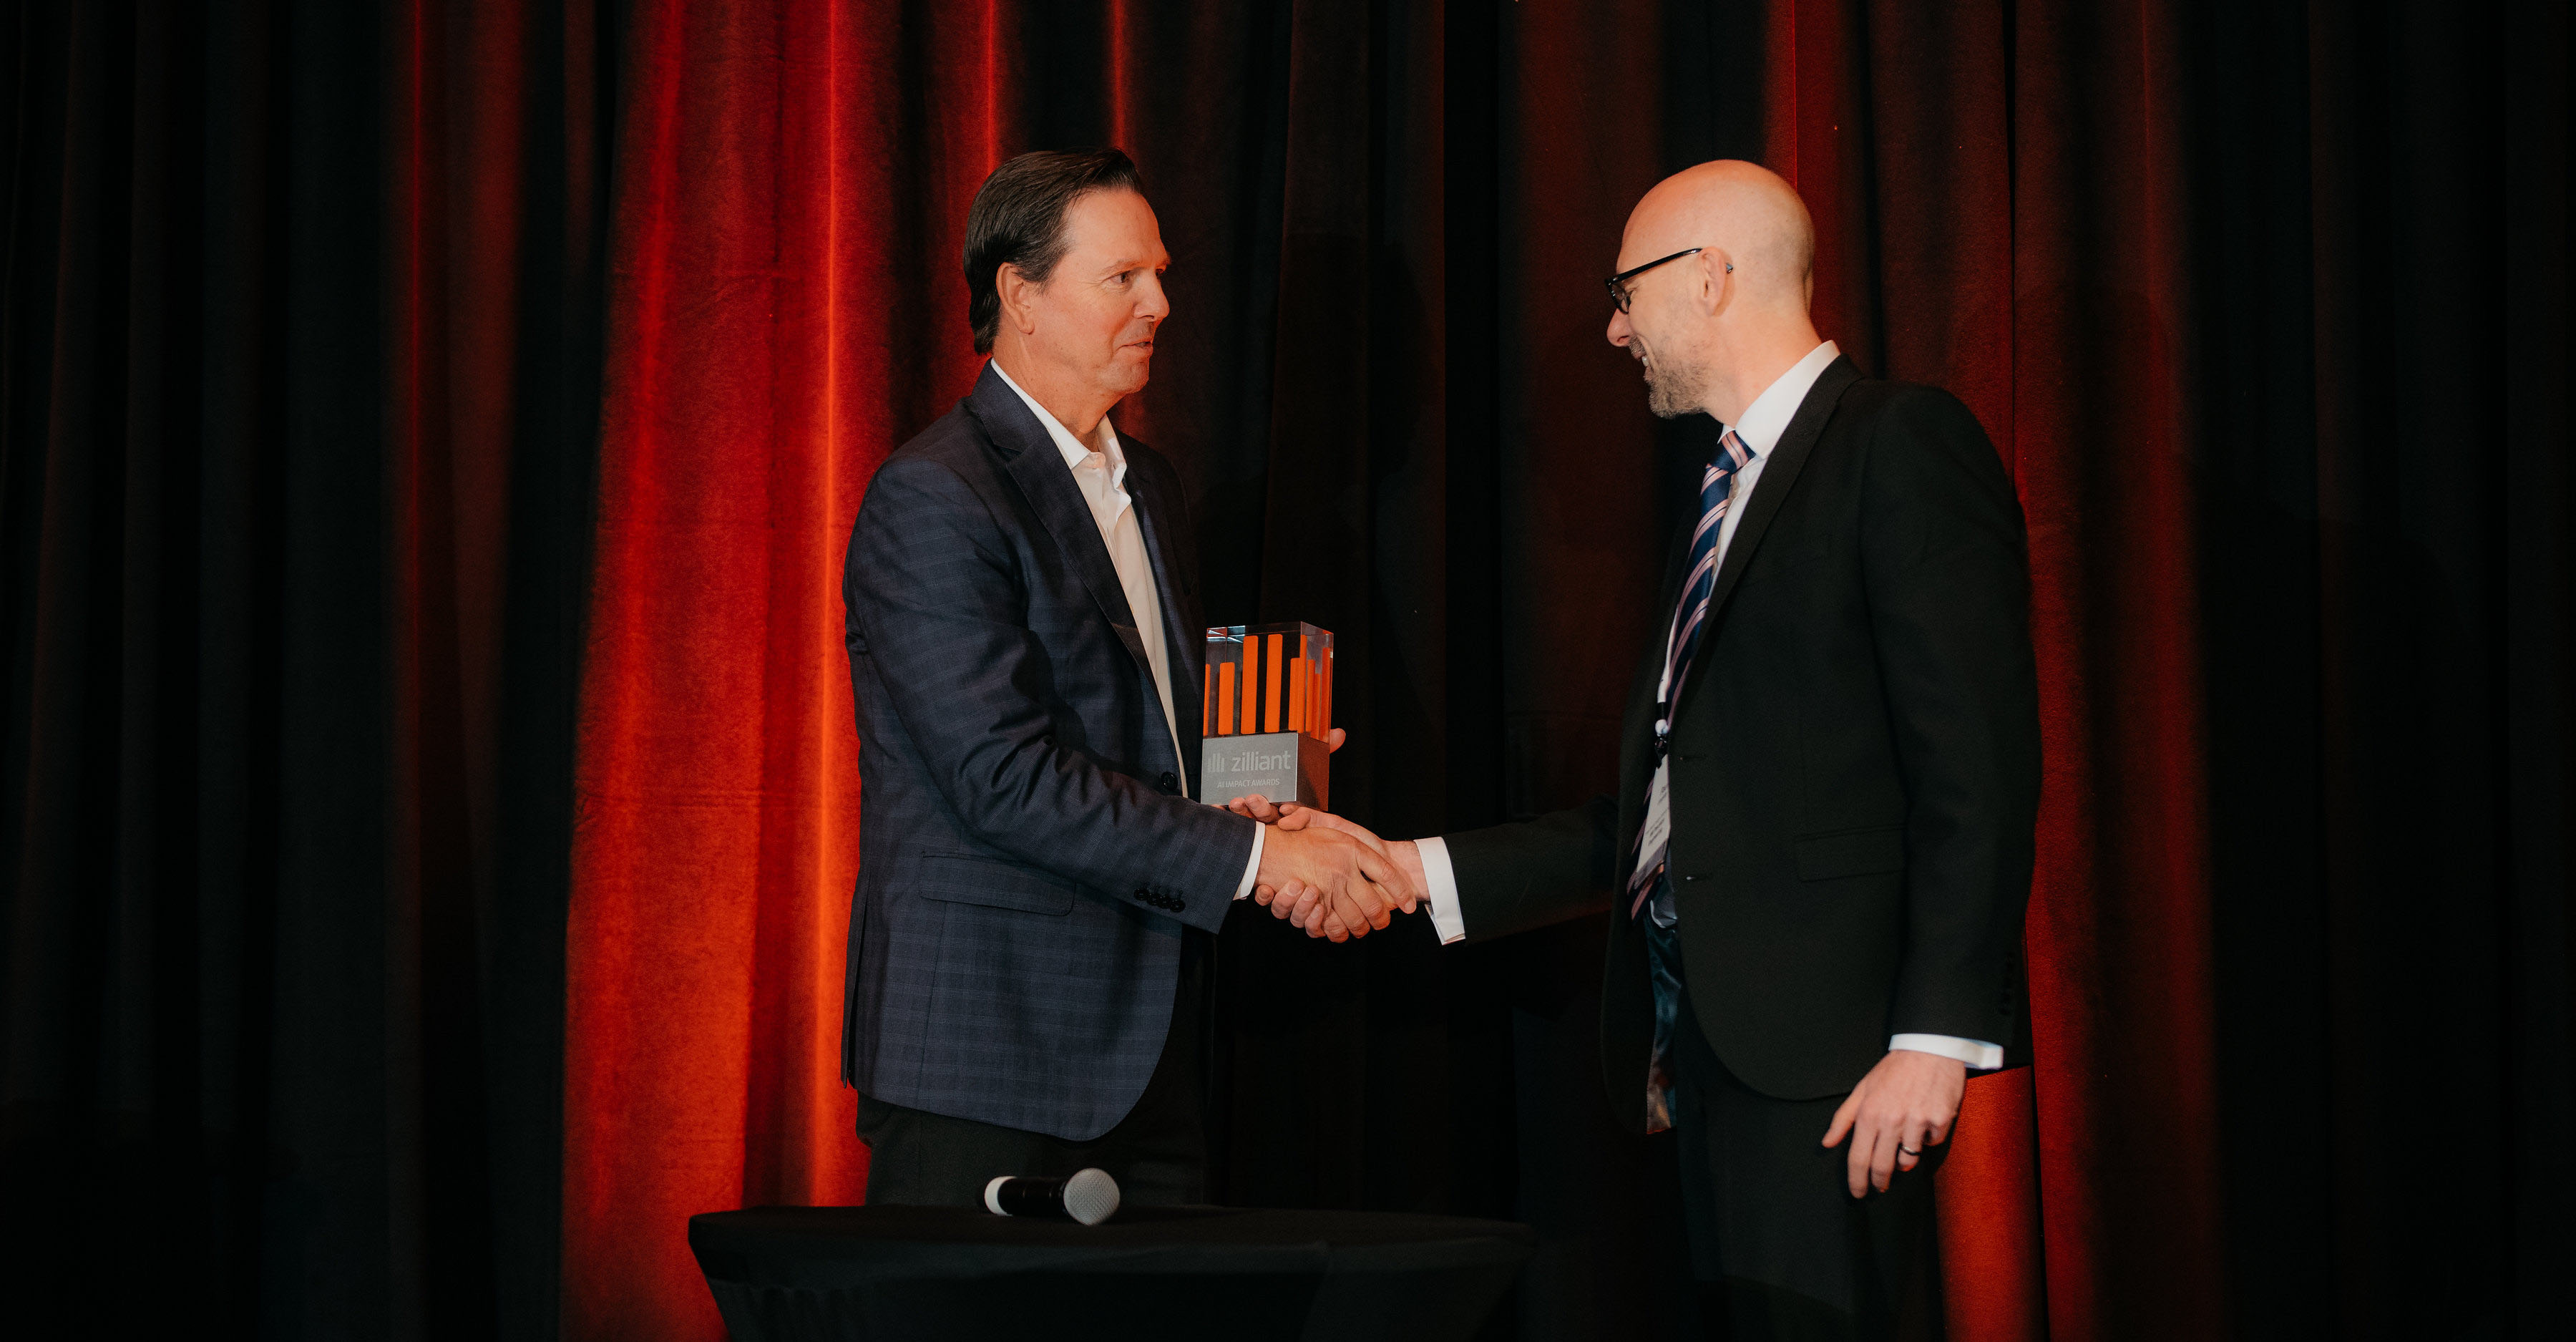 McGrath RentCorp Vice President and Division Manager John Lieffrig accepts the AI User Adoption Award from Zilliant CEO Greg Peters.